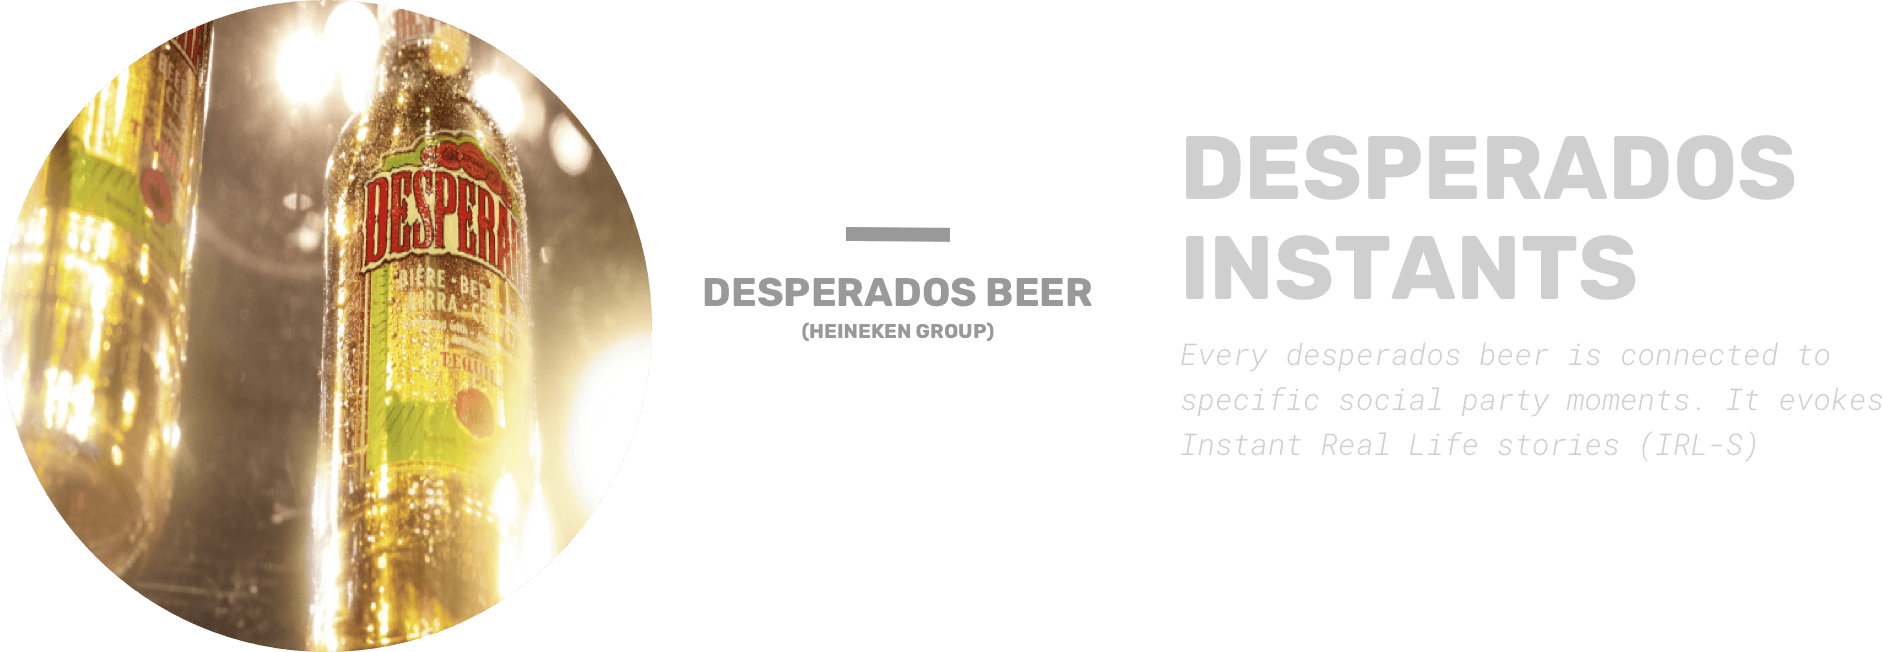 Protected: desperados instants